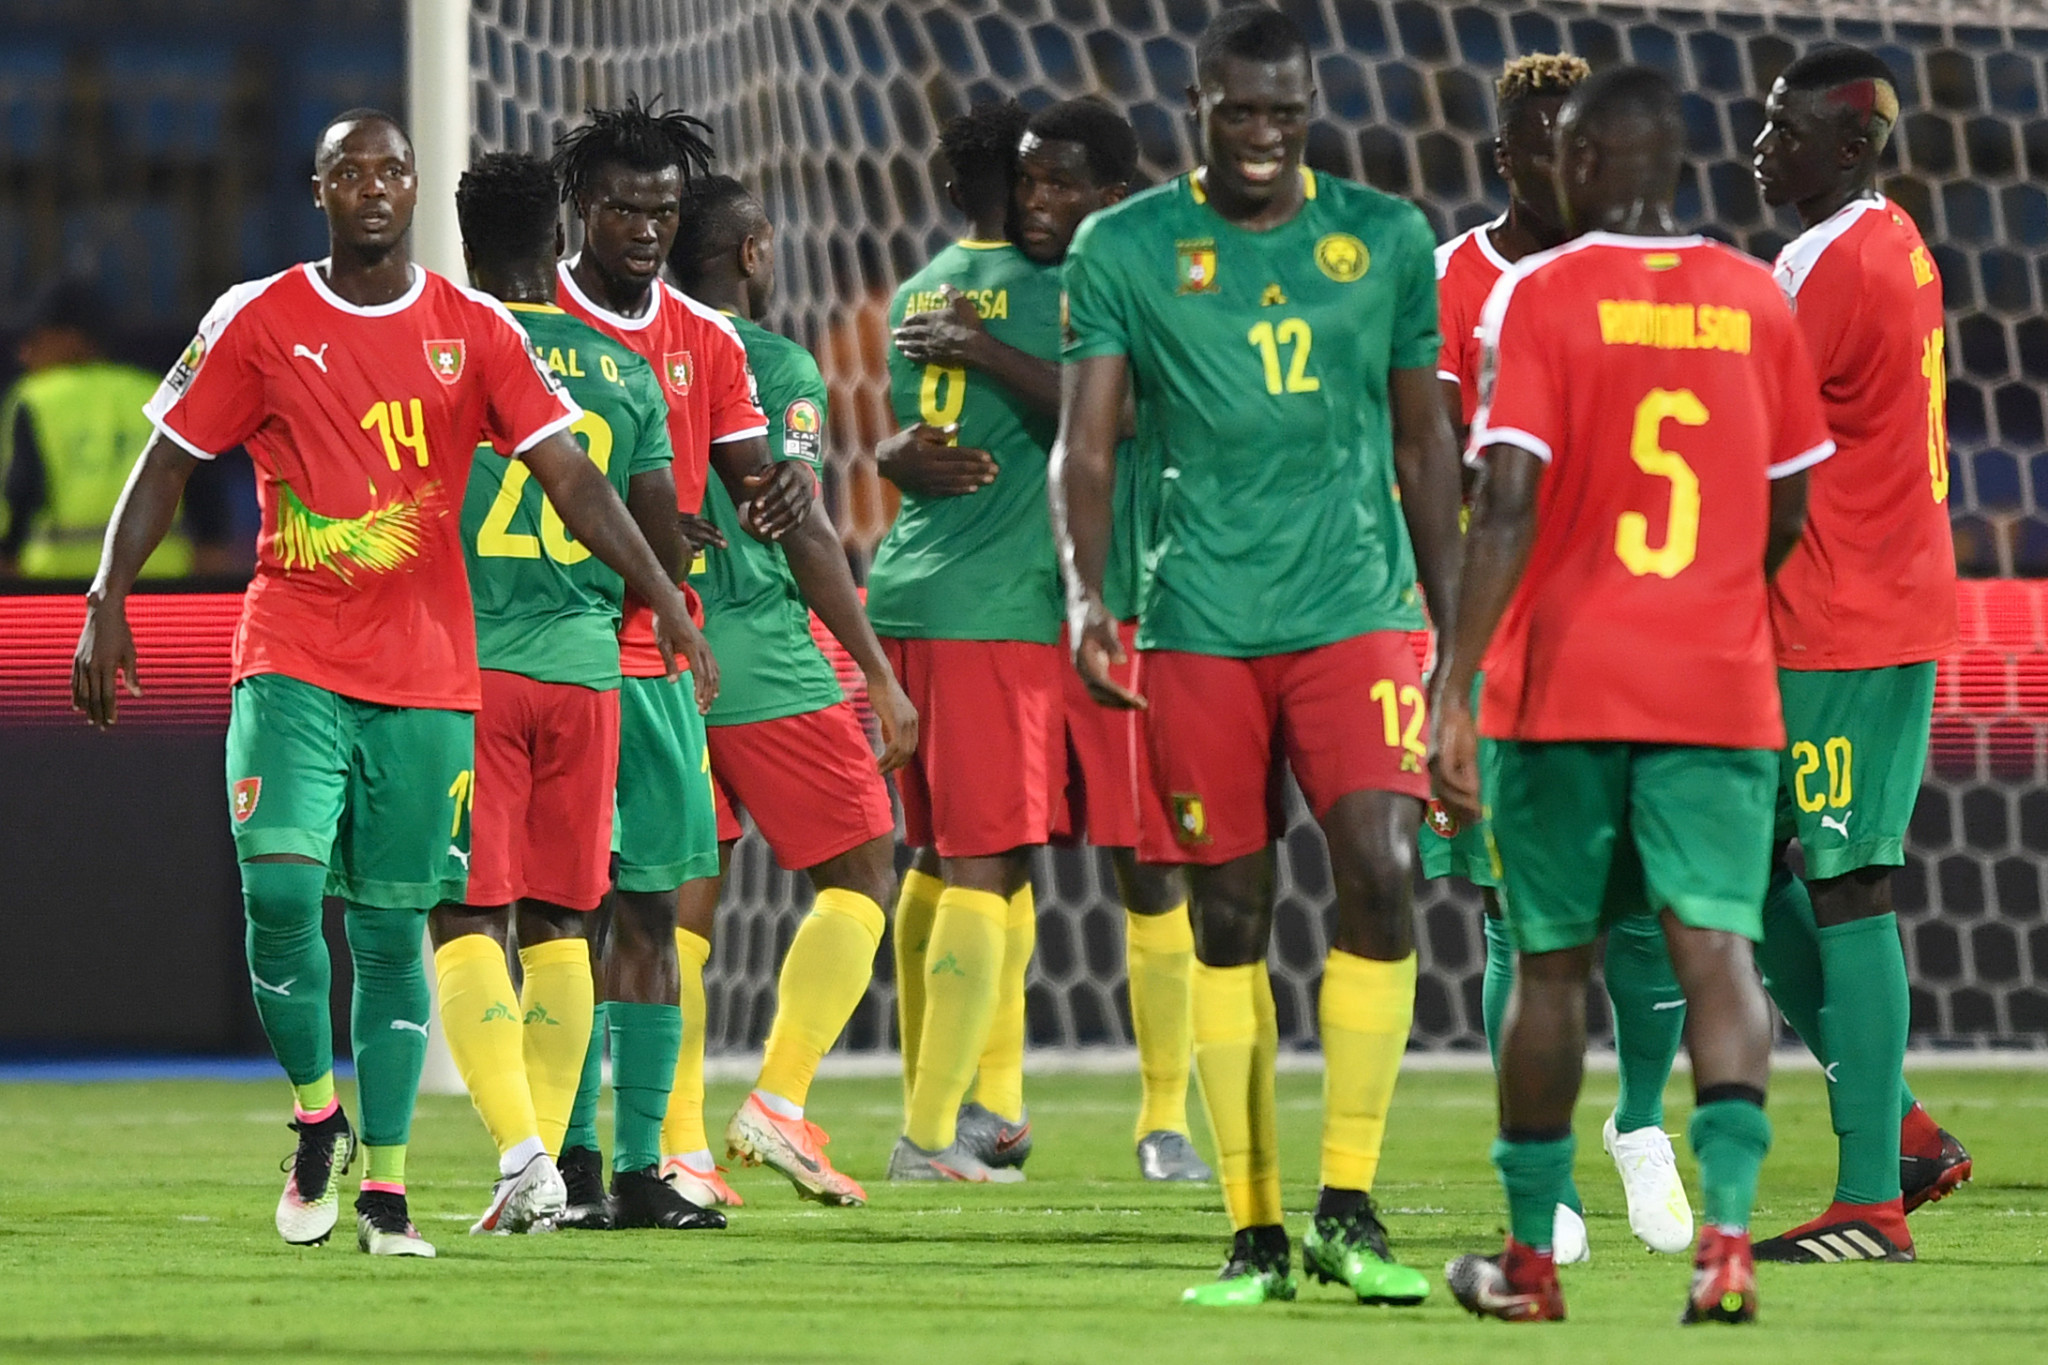 Cameroon and Benin both through to last-16 at Africa Cup of Nations after goalless draw